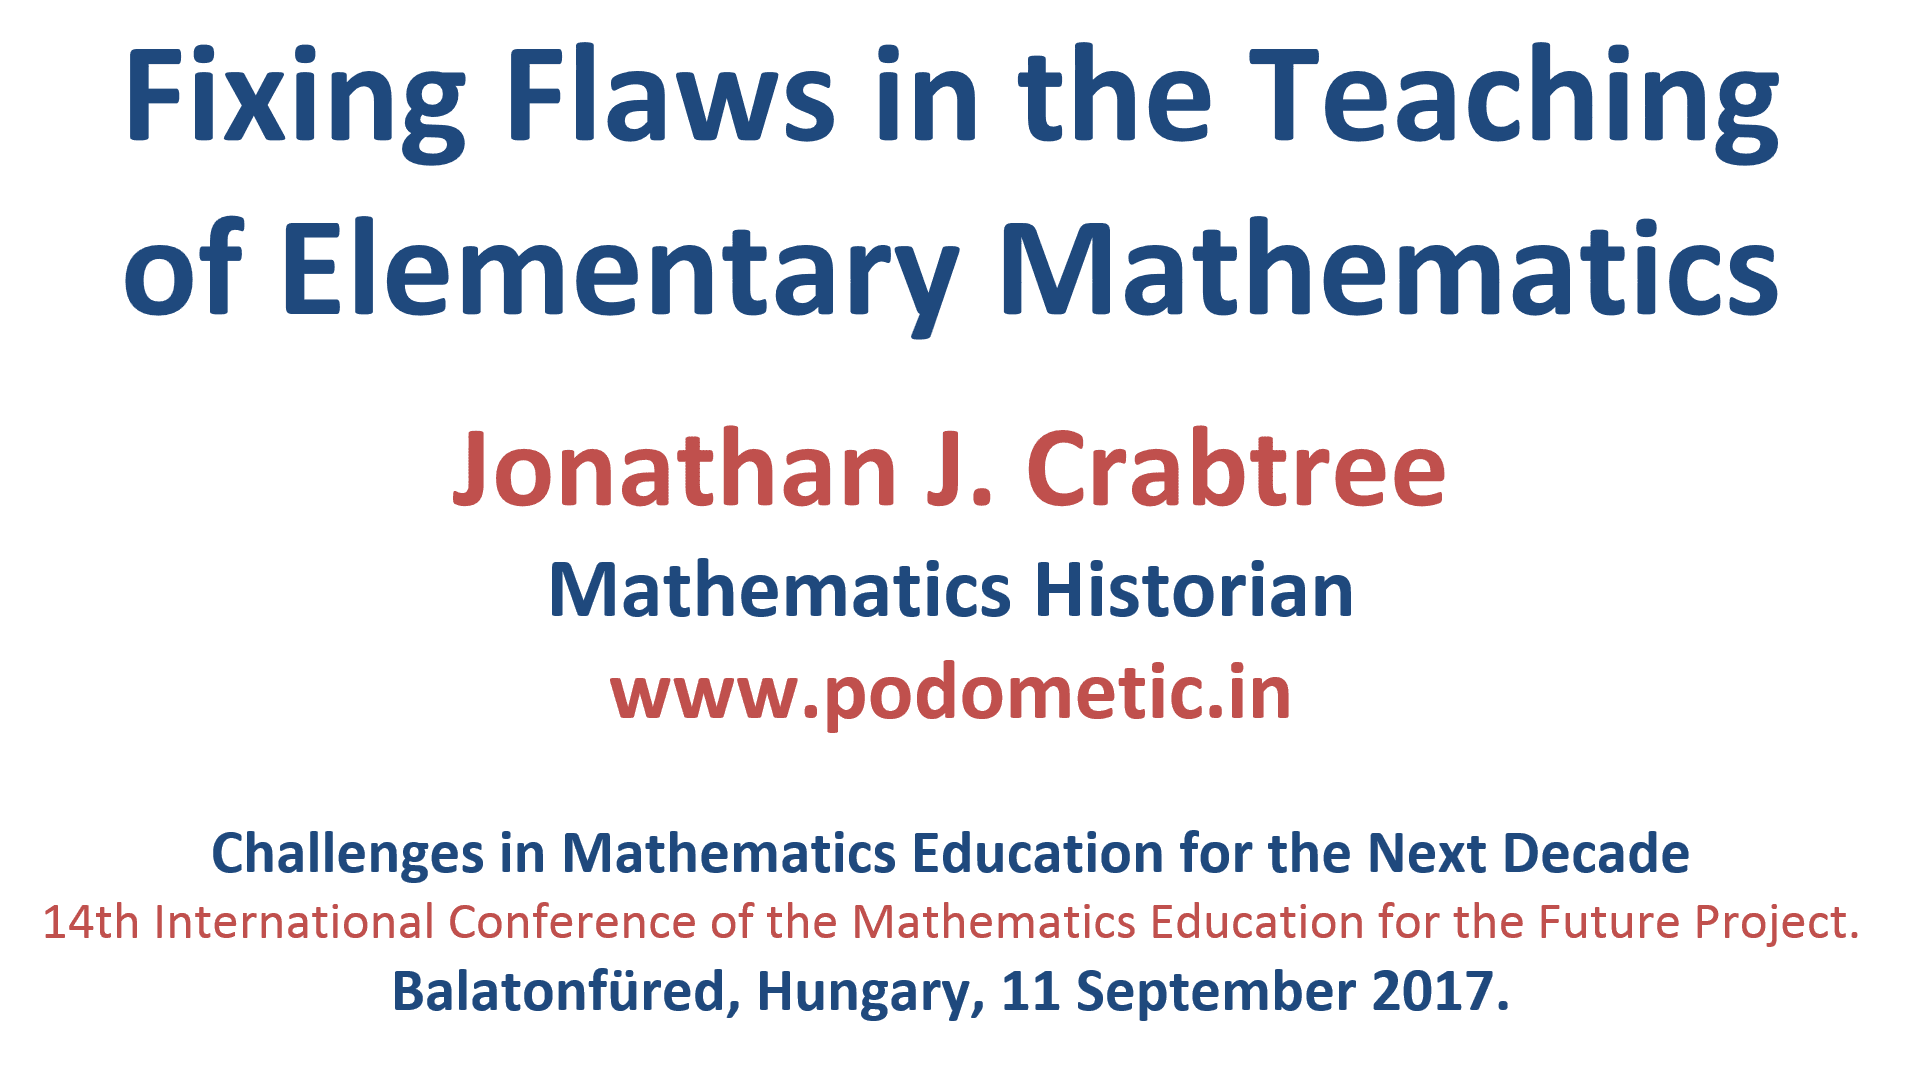 Fixing Flaws in the Teaching of Elementary Mathematics